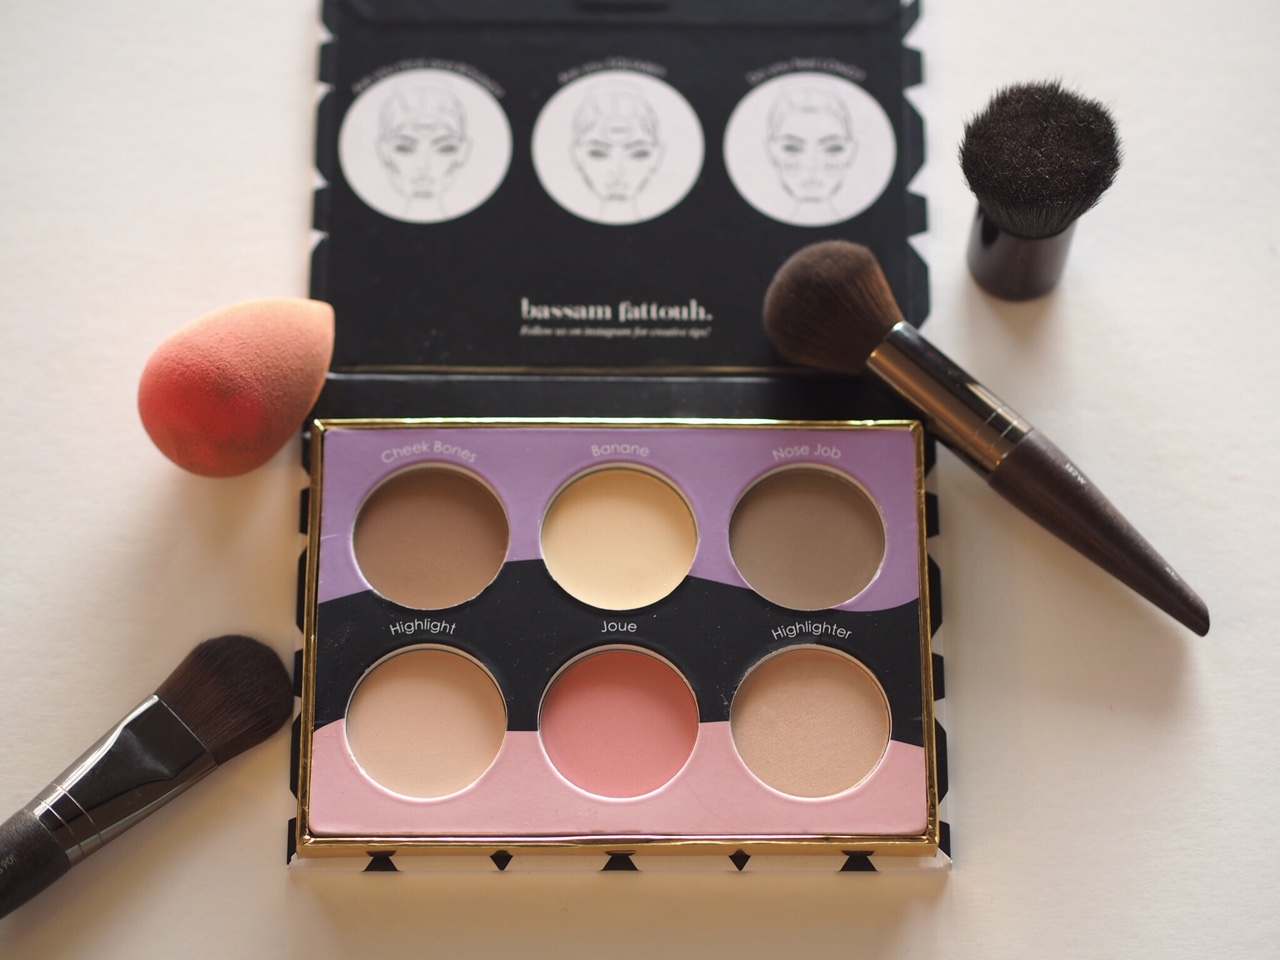 the blur kit bassam fattouh cosmetics